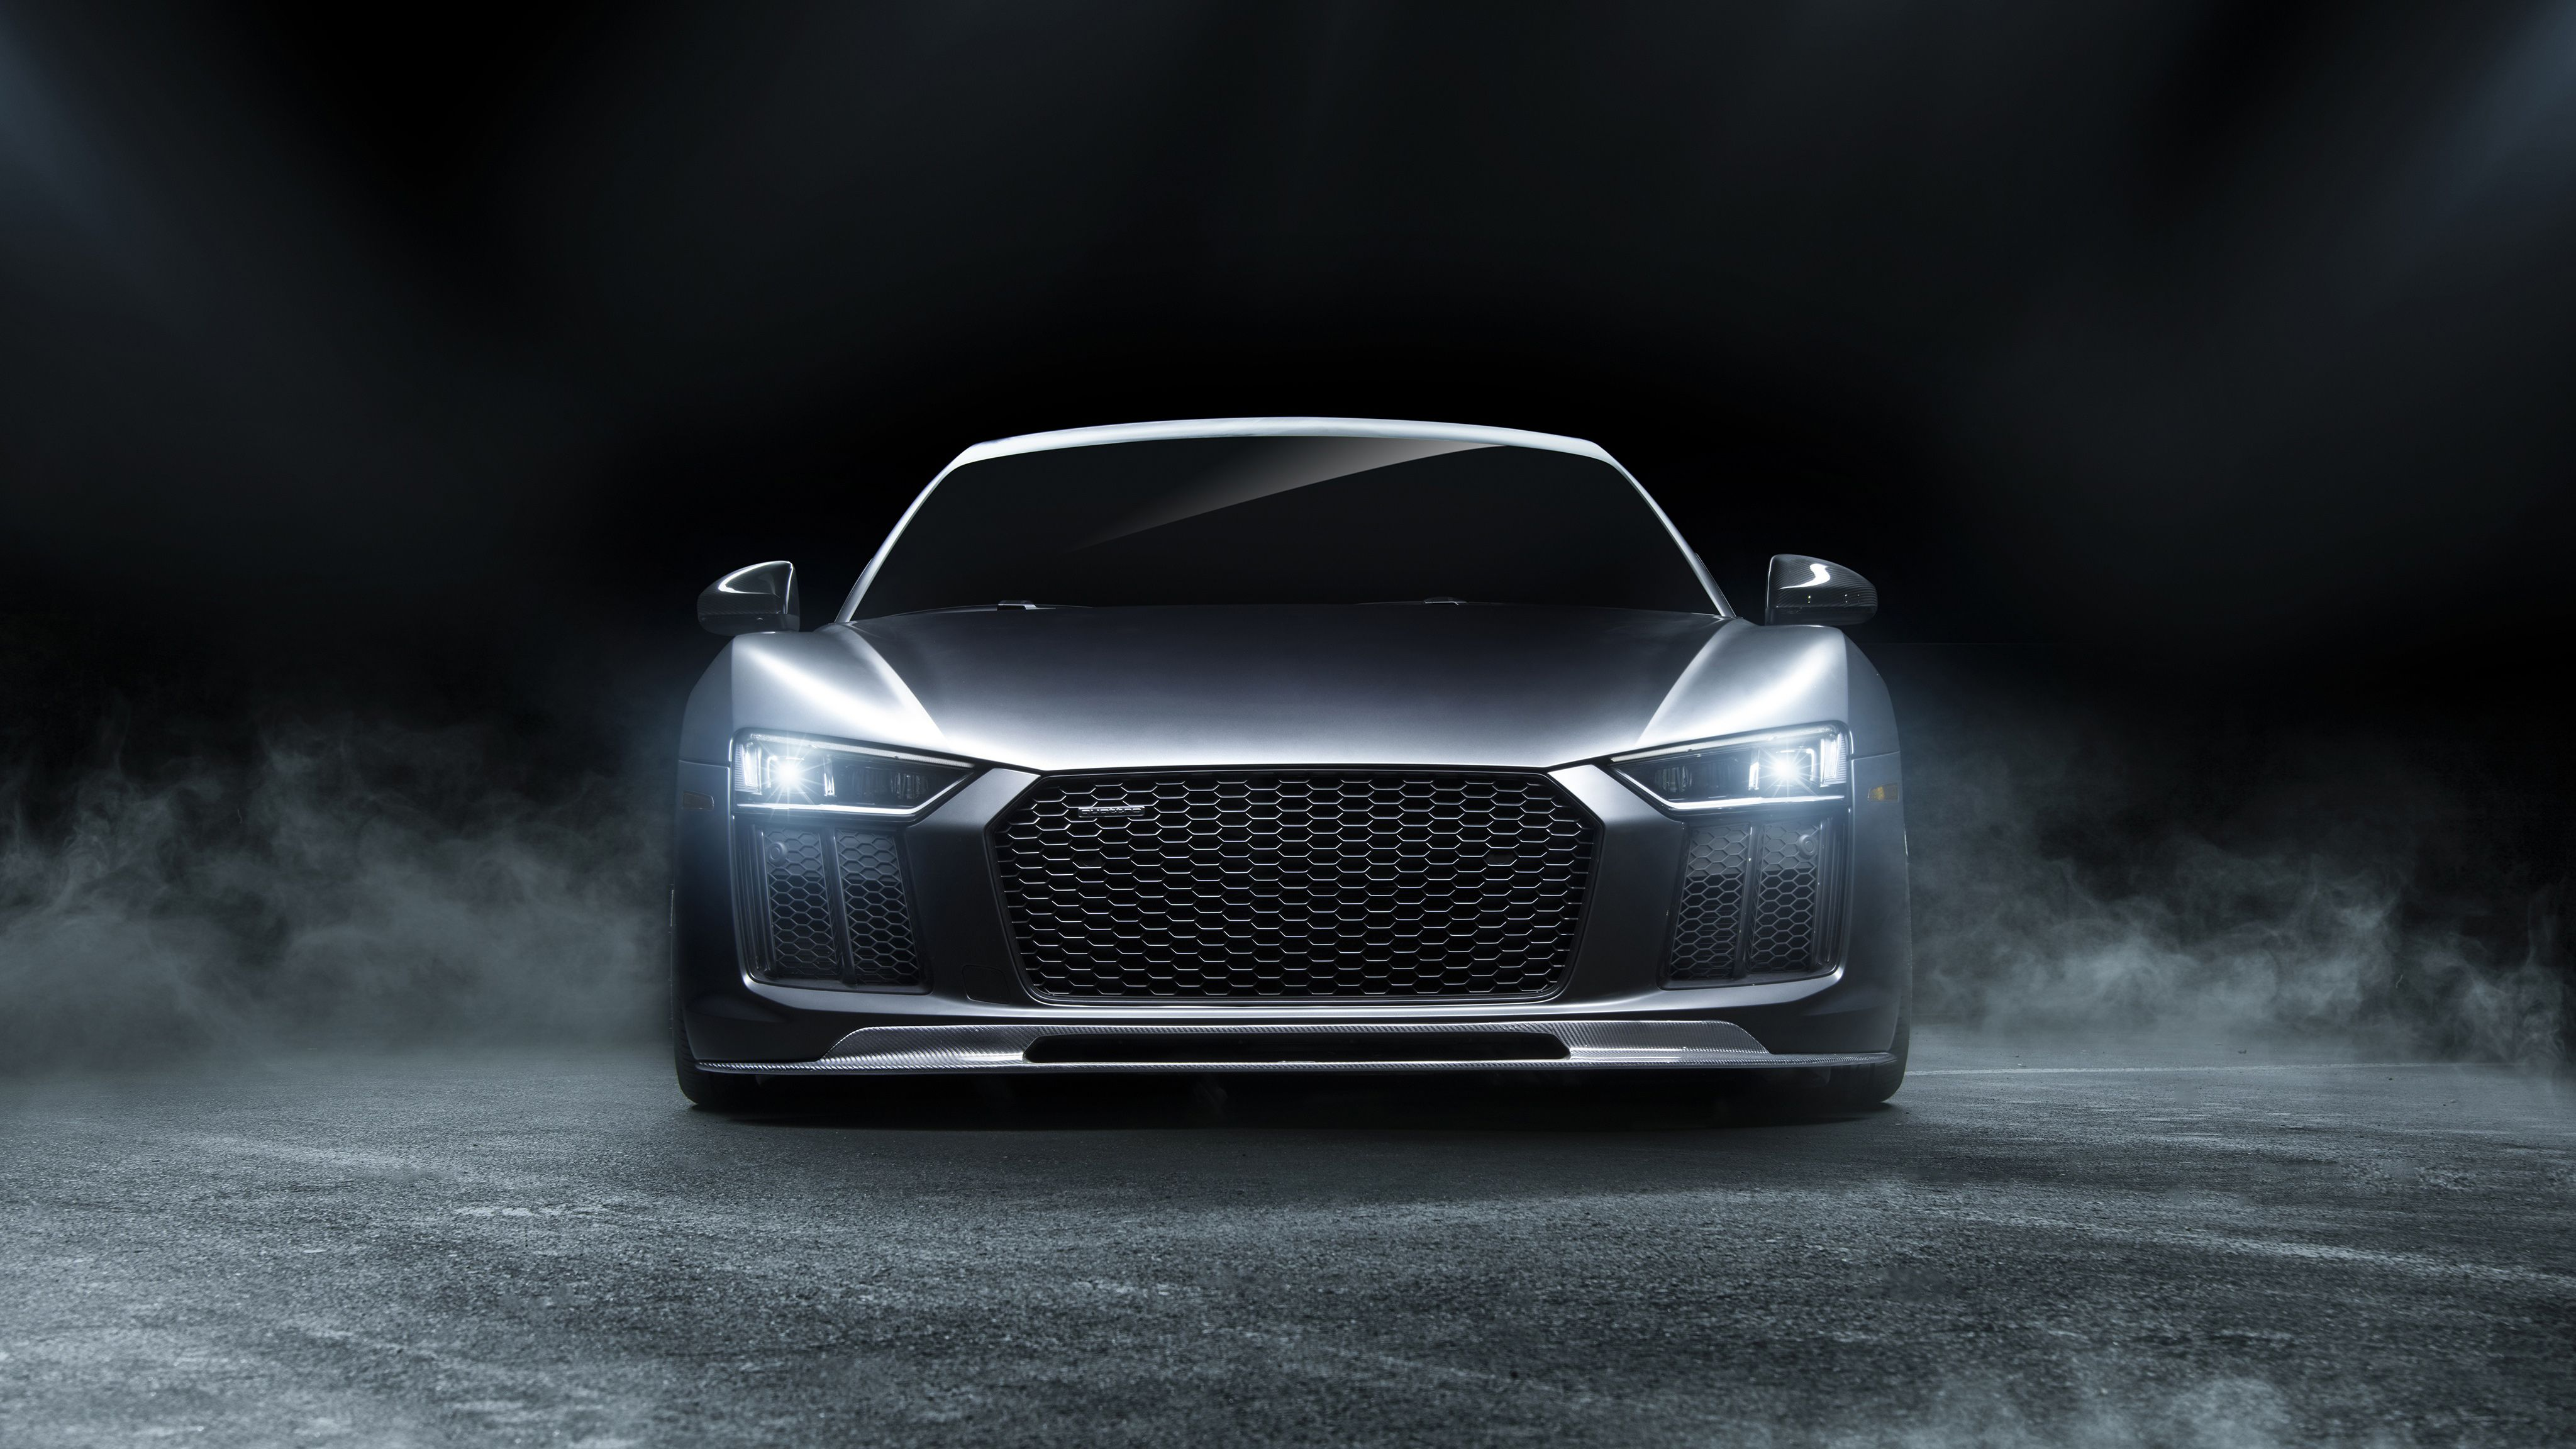 Audi Supercar Wallpaper High Quality Resolution Is 4k Wallpaper